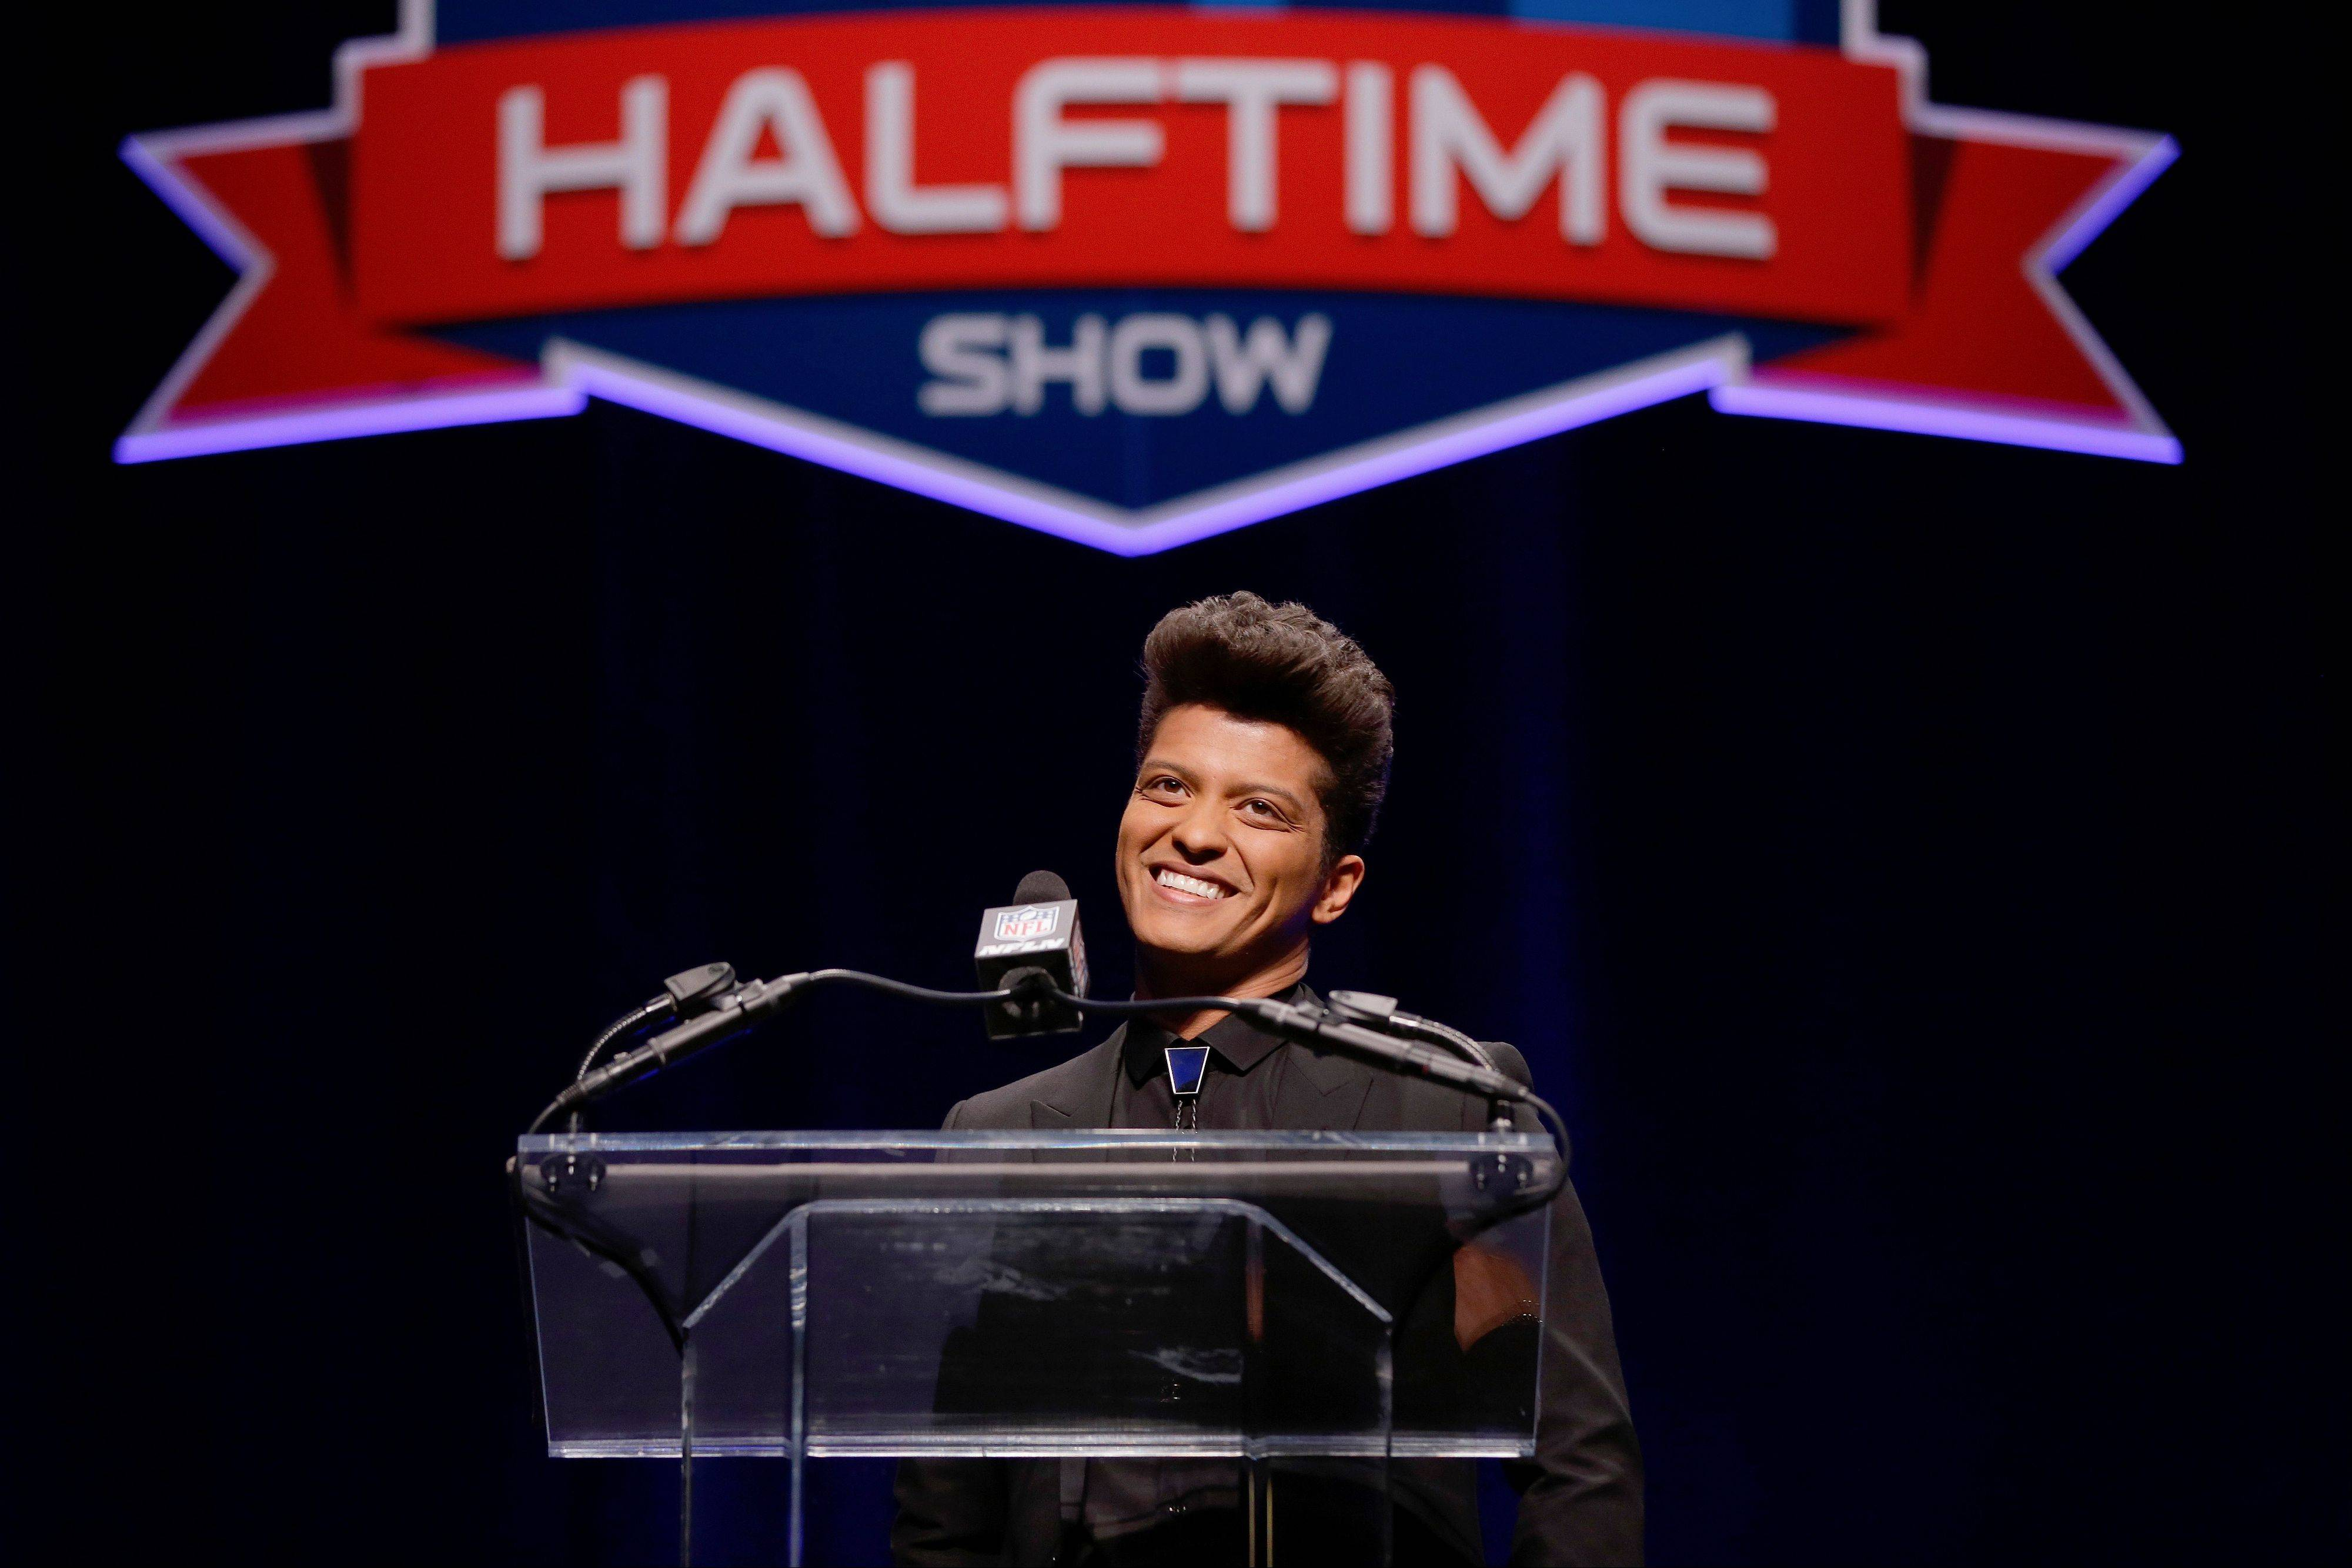 Bruno Mars, who will headline the half-time show at the NFL Super Bowl XLVIII, speaks during a press conference Thursday in New York.